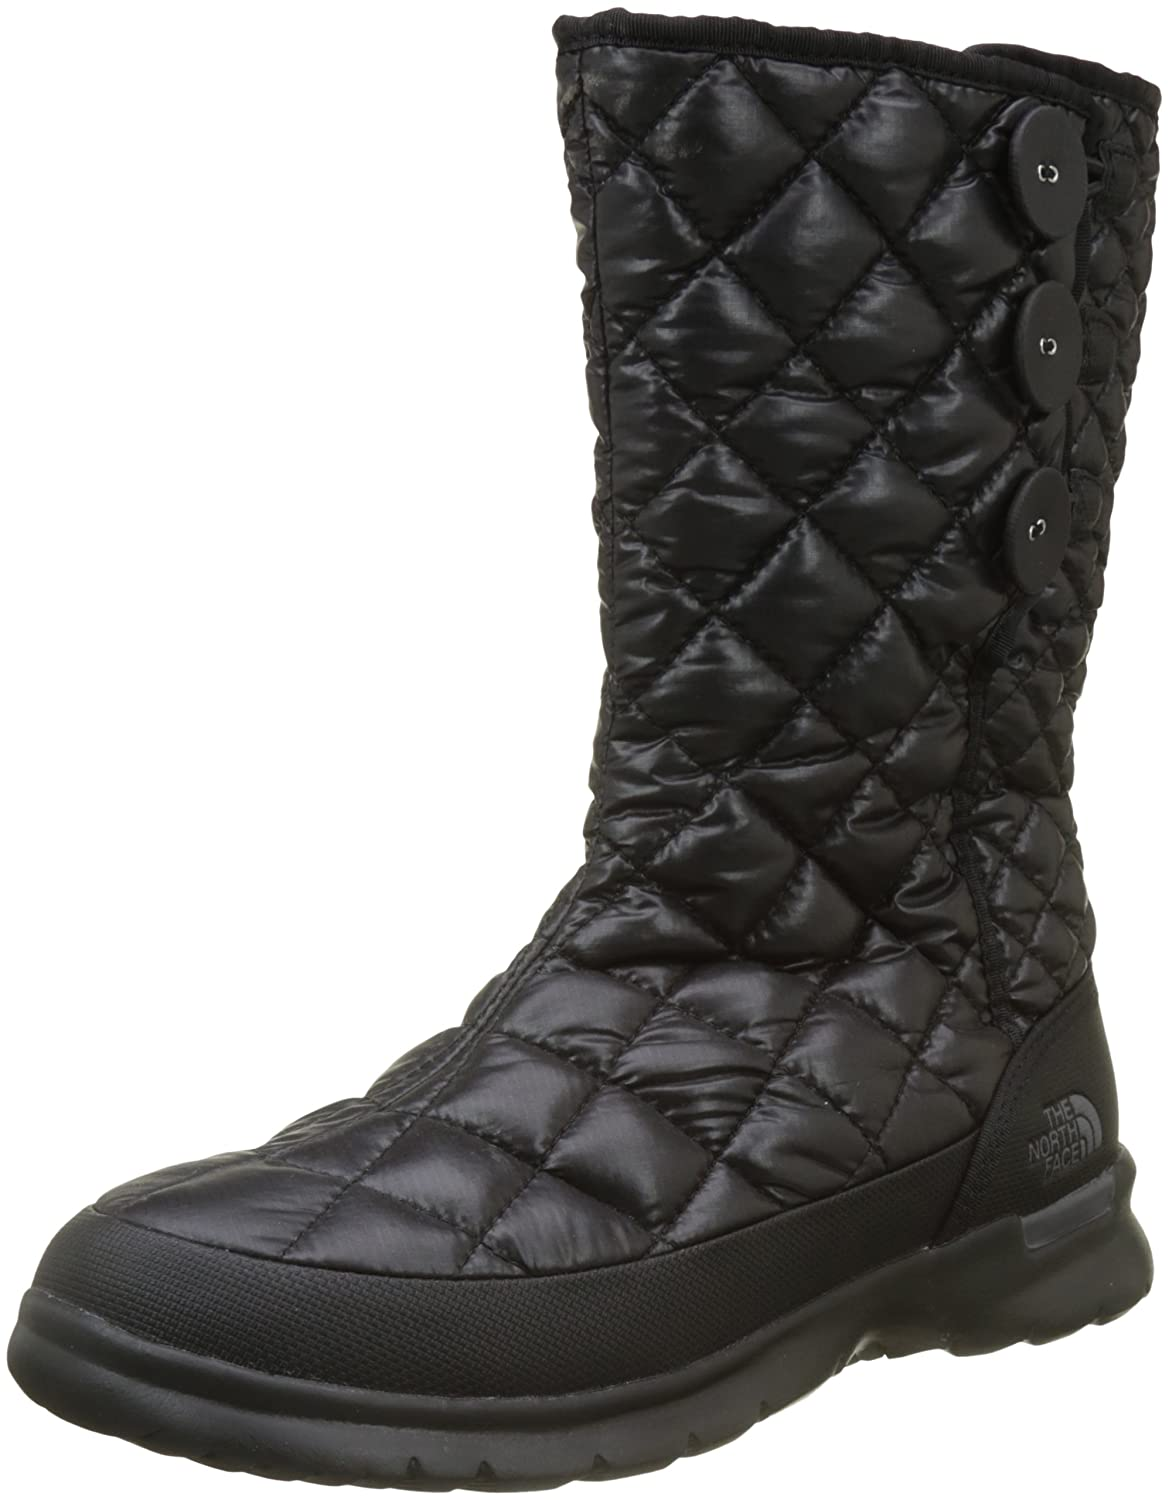 TALLA 40 EU. The North Face T92t5k, Botas de Senderismo para Mujer